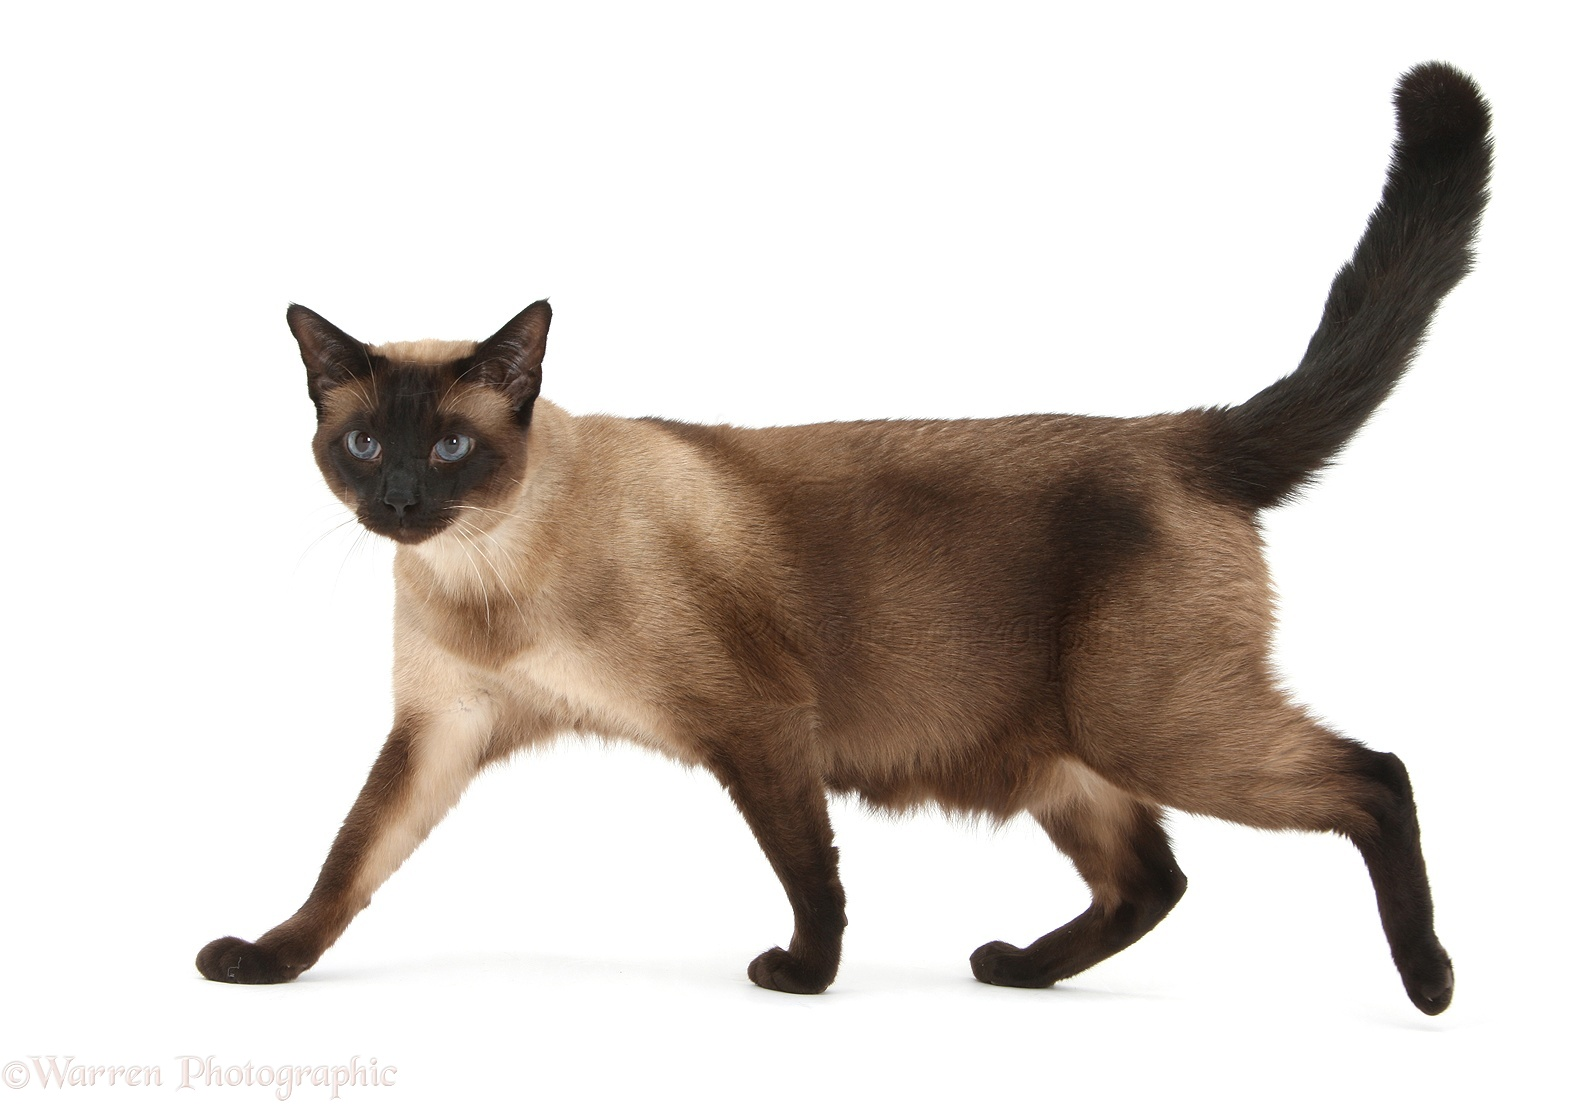 Seal point Siamese-cross cat photo - WP32395